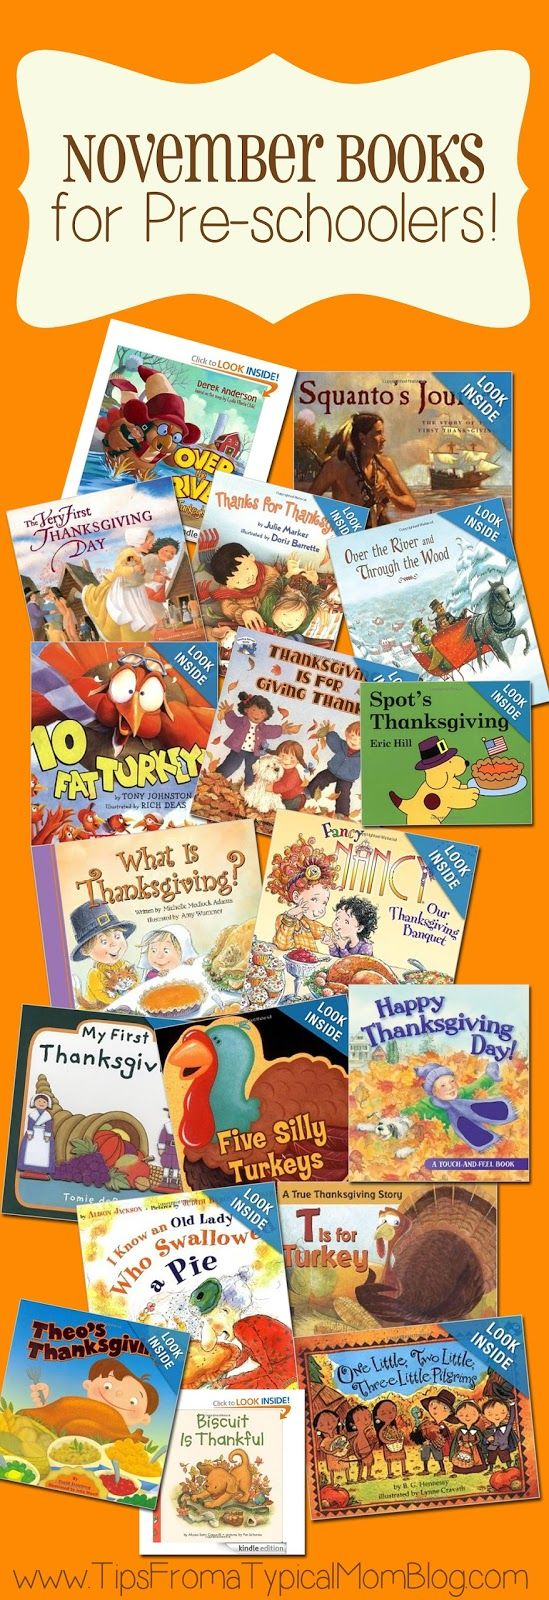 Thanksgiving Book List For Preschoolers Kid Blogger Network